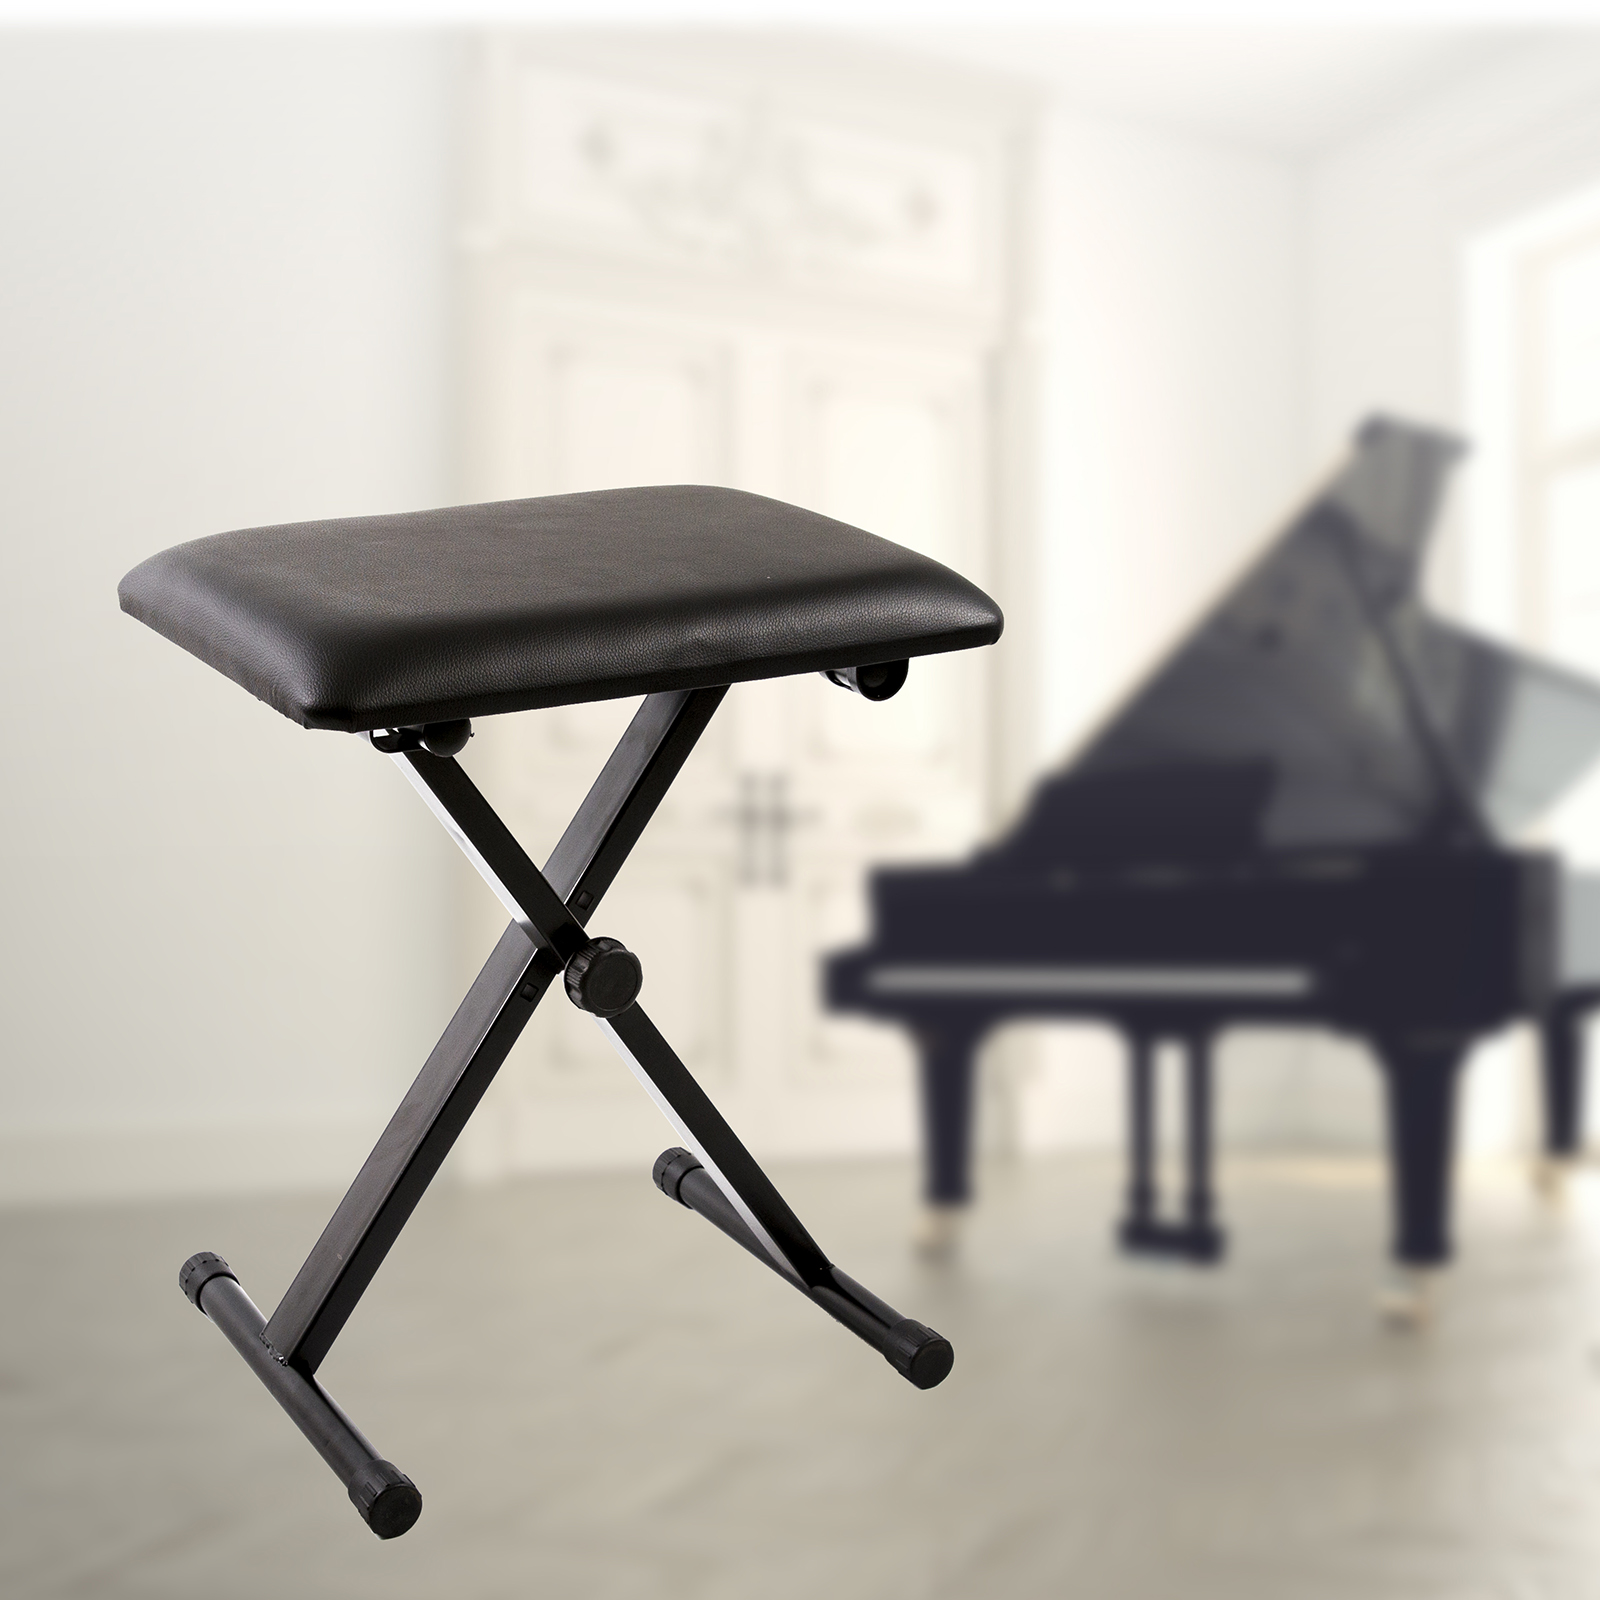 Features & Portable Piano Stool Adjustable Folding 3 Way Keyboard Leather ... islam-shia.org